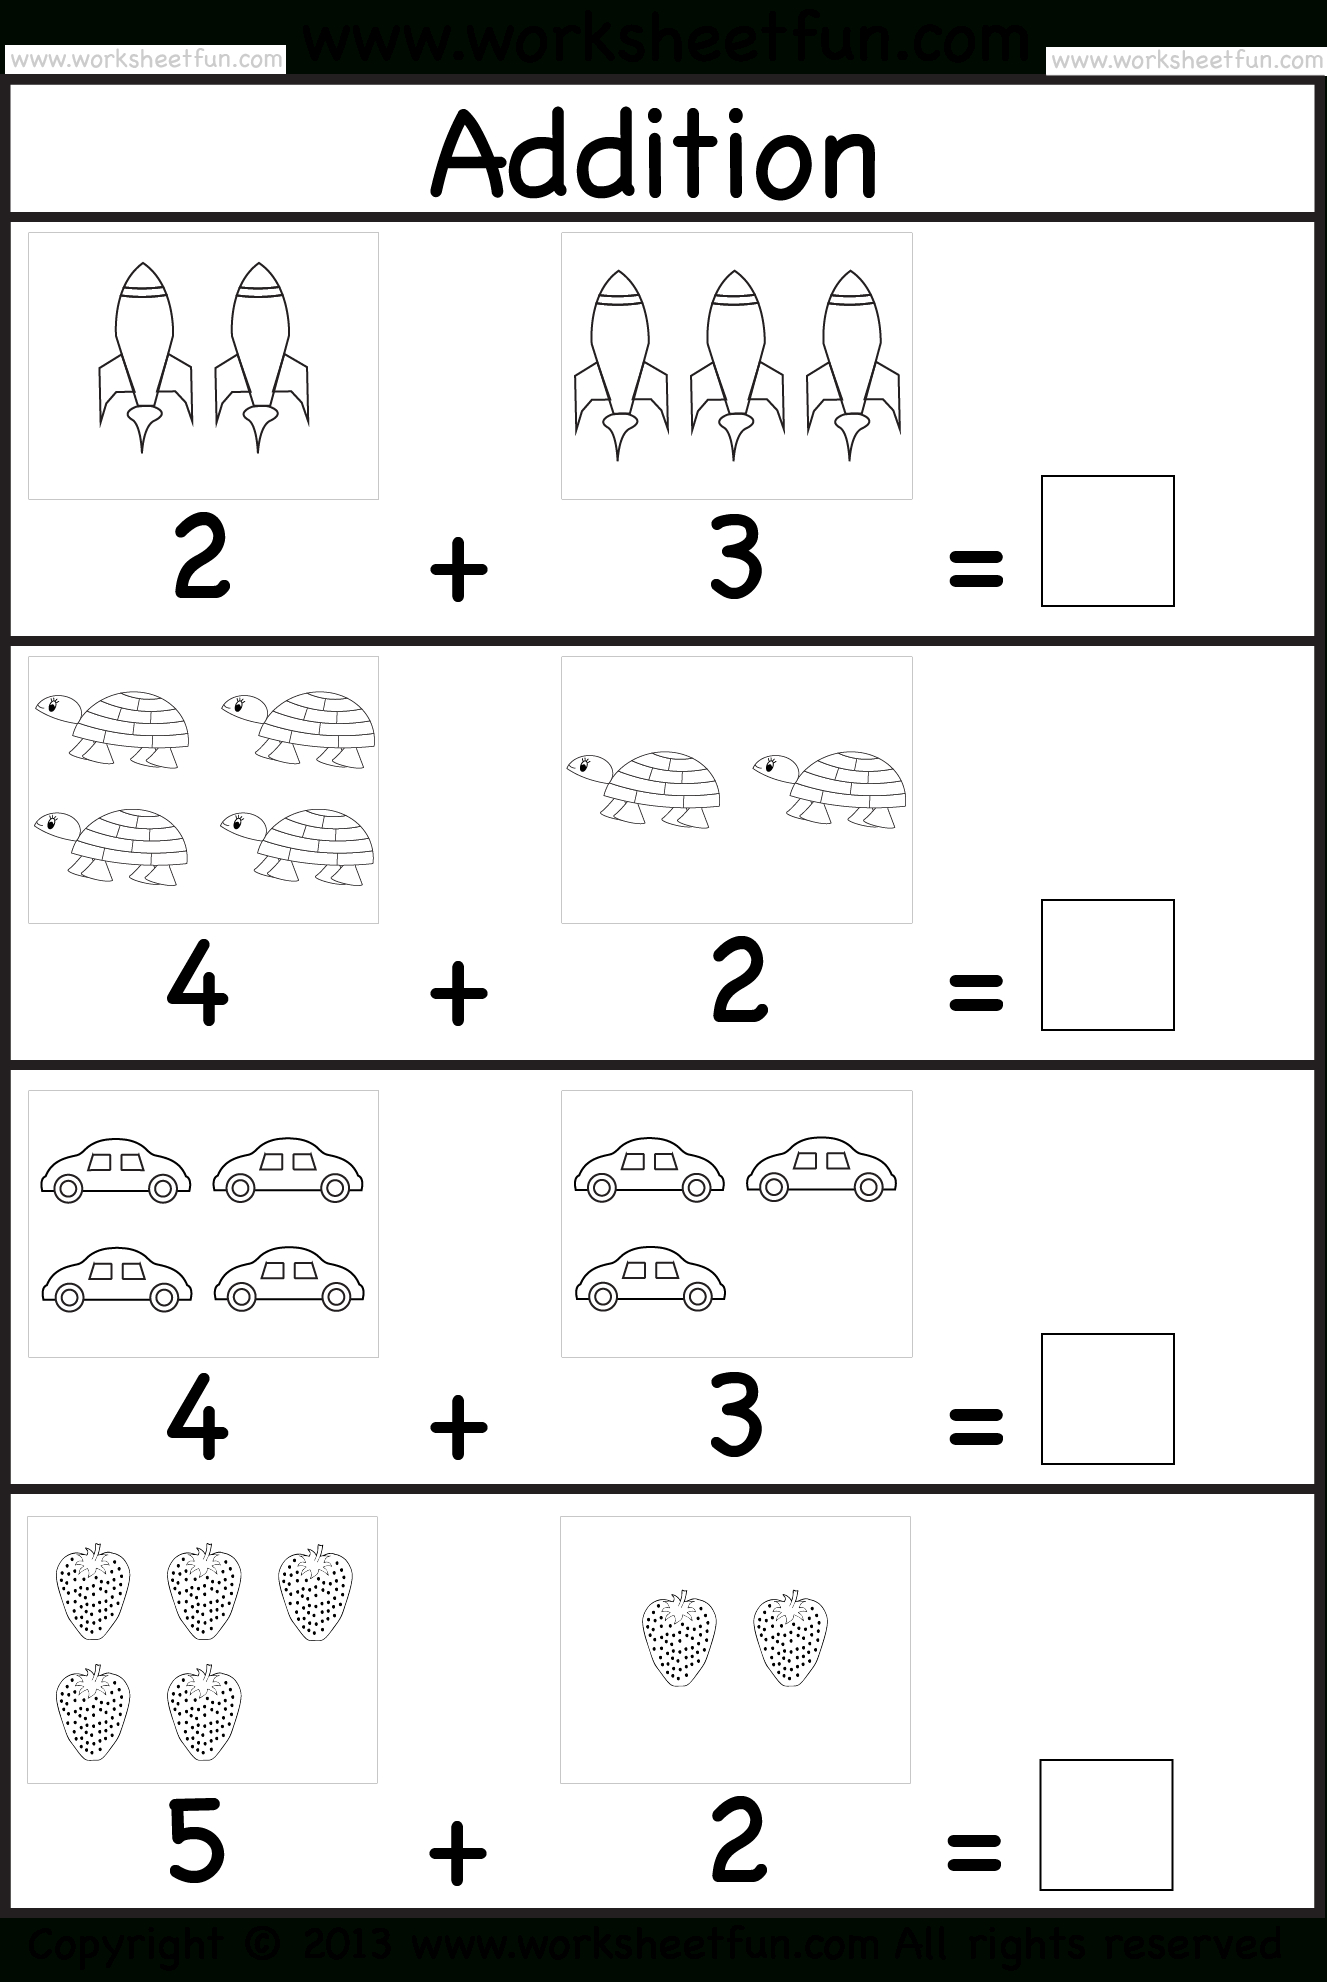 Addition Worksheet. This Site Has Great Free Worksheets For | Free Printable Preschool Addition Worksheets